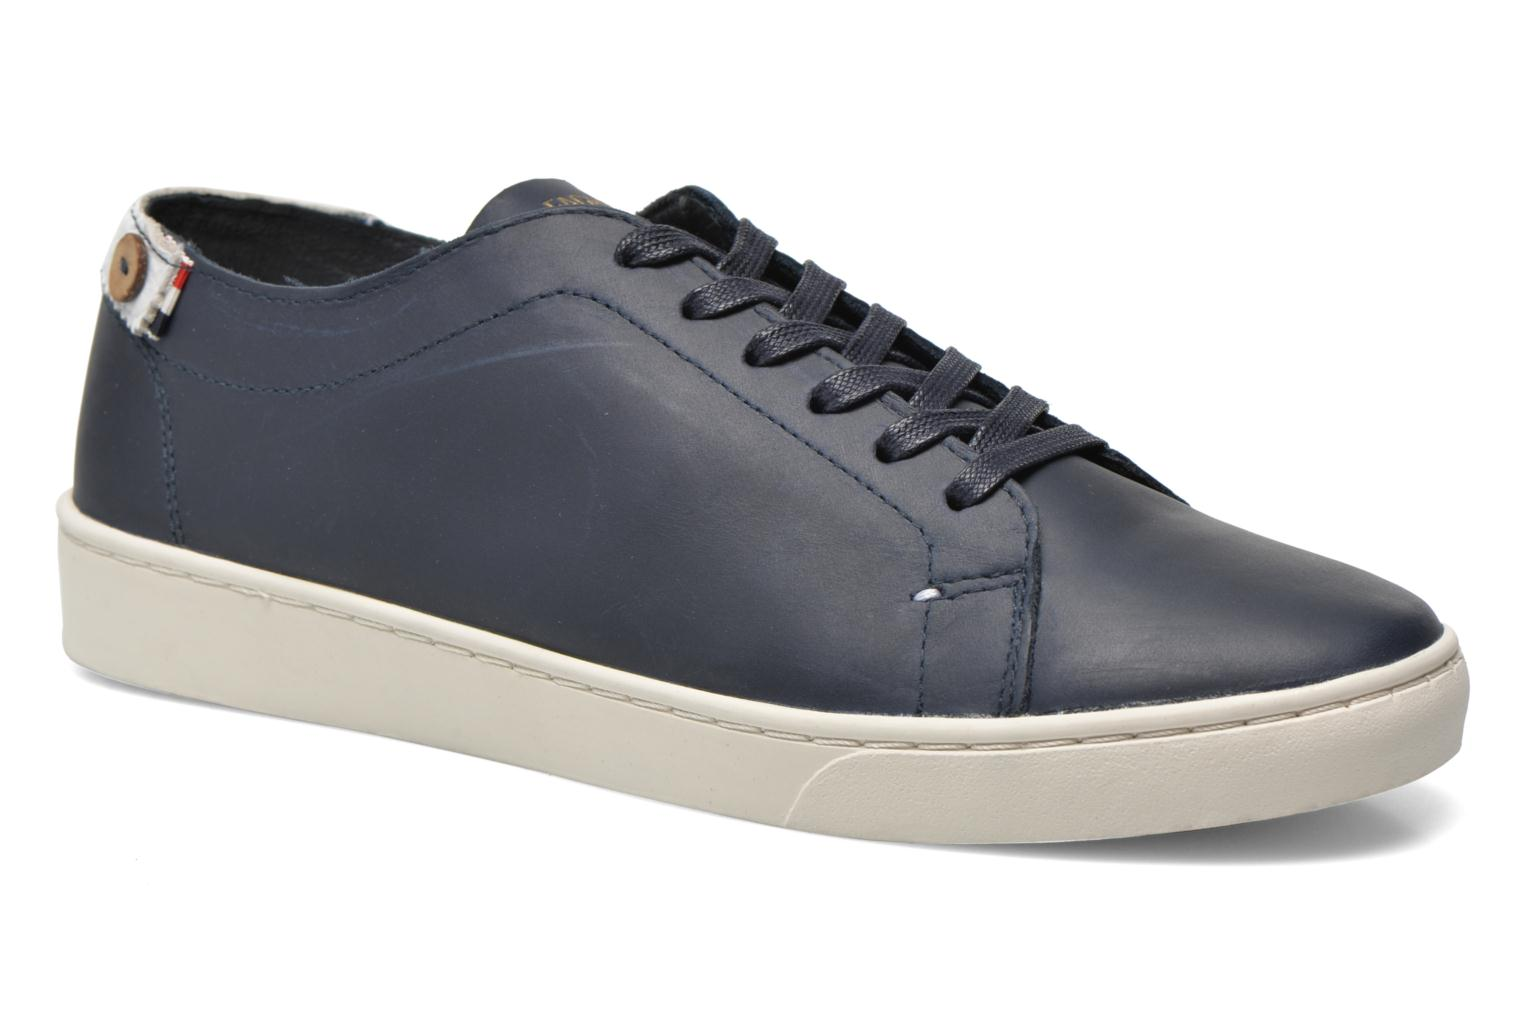 brand new 2493f 3d5b2 Marques Chaussure homme Faguo homme Aspenlow Leather Navy GH8HUA1Z -  naturelle-beaute-bio.fr